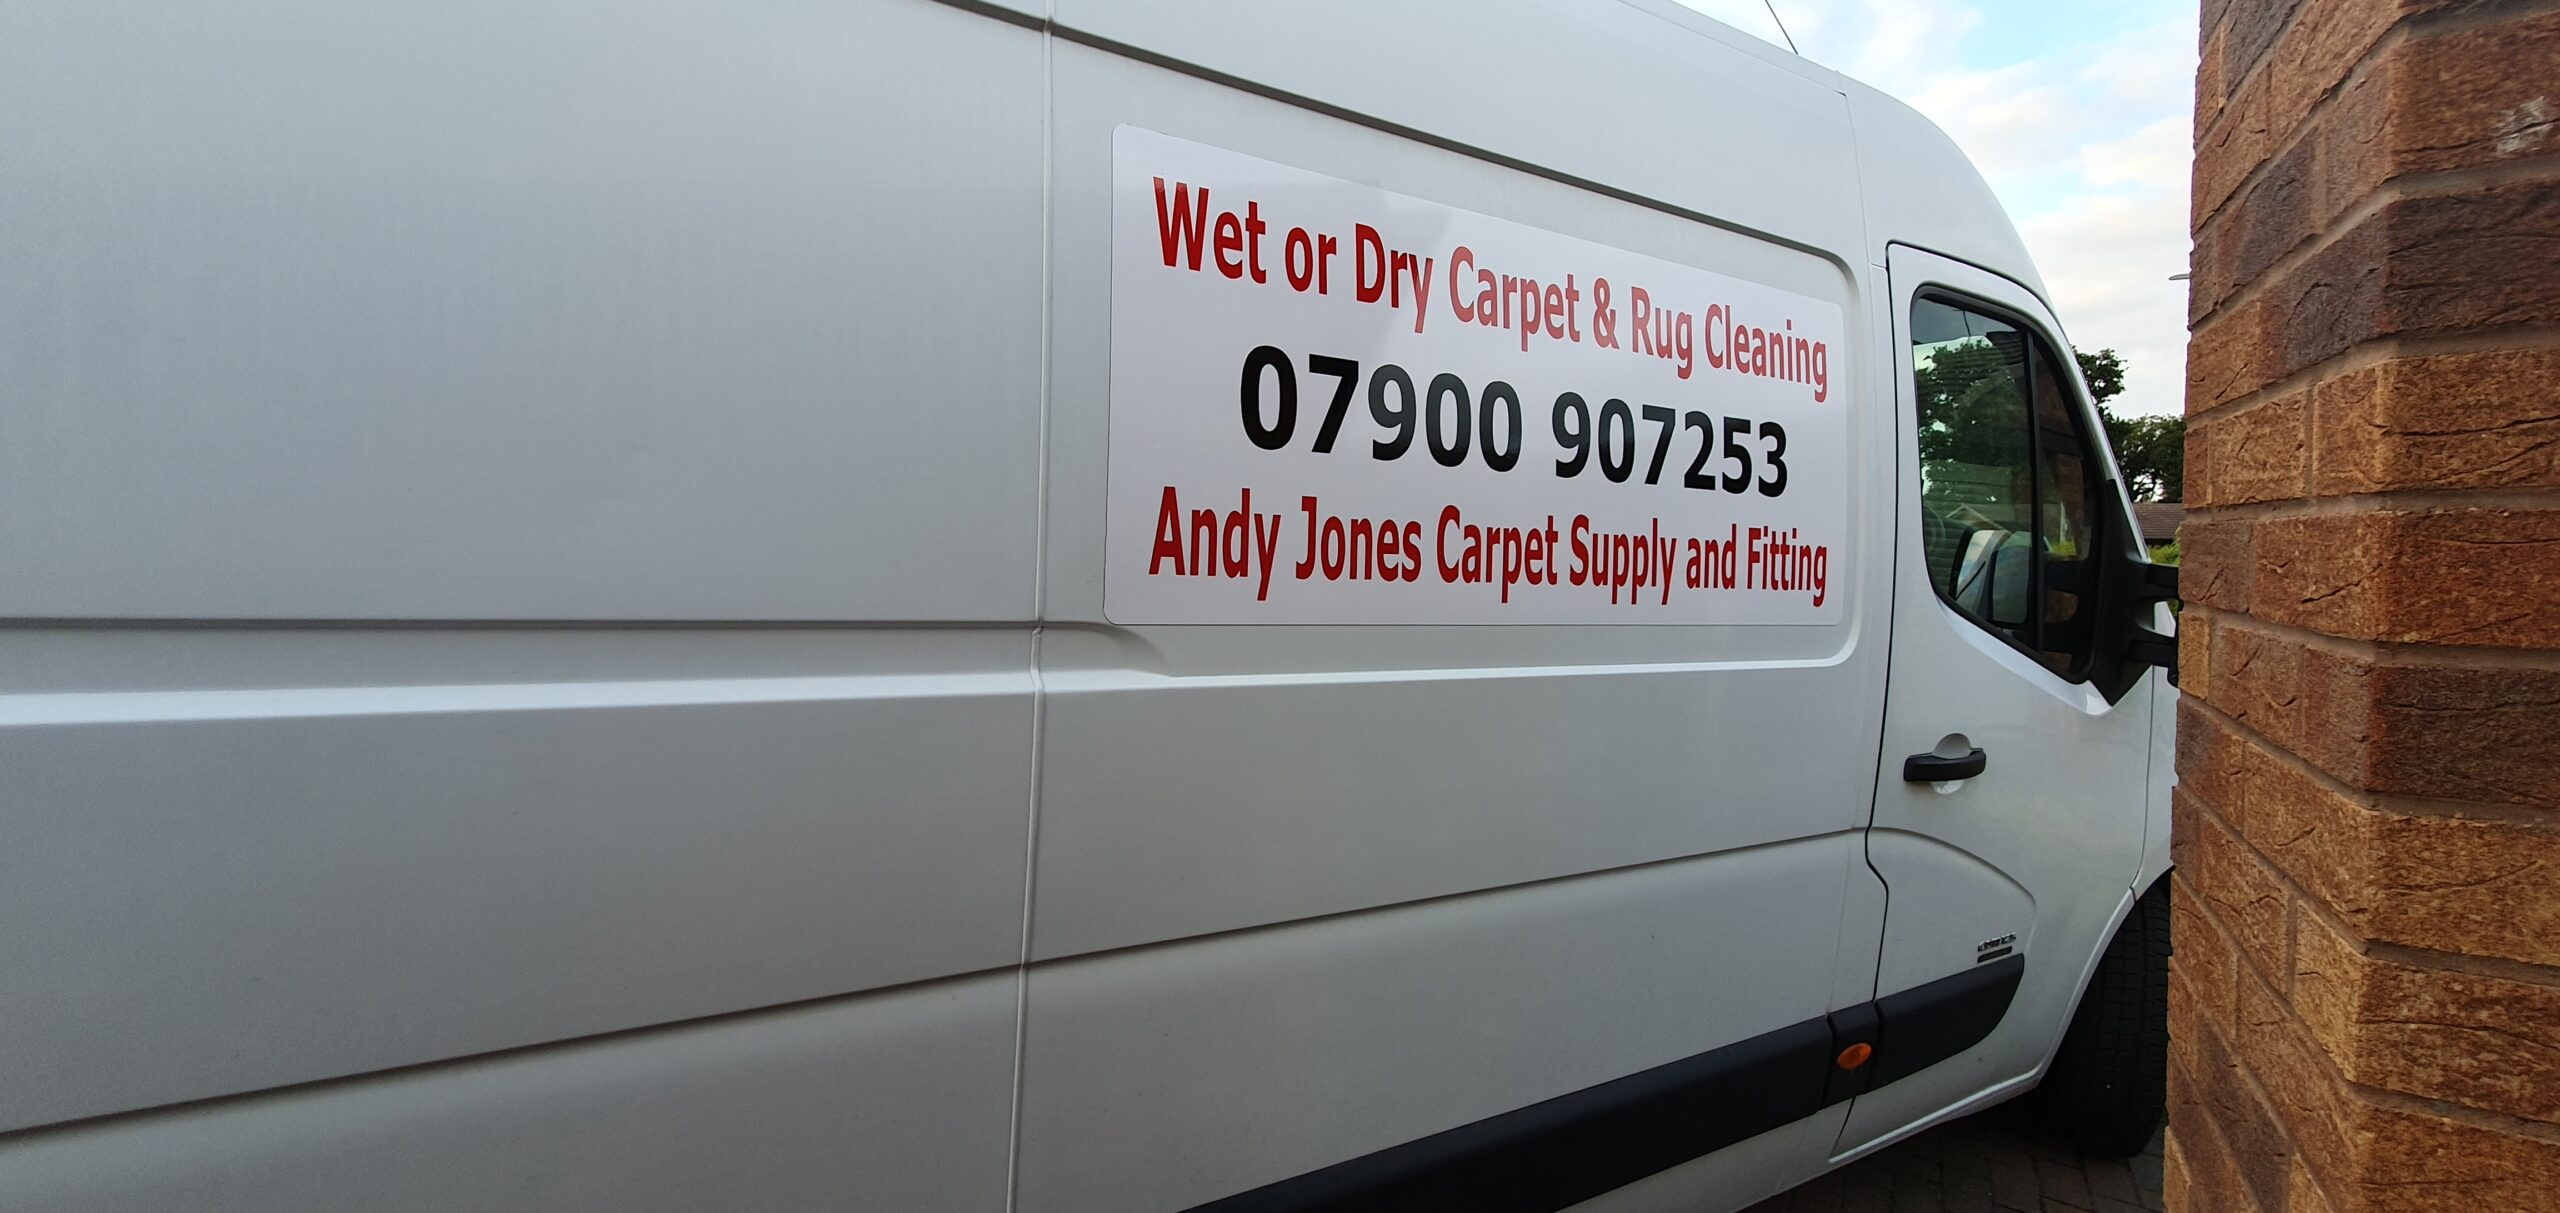 About - Wet Or Dry Carpet Cleaning